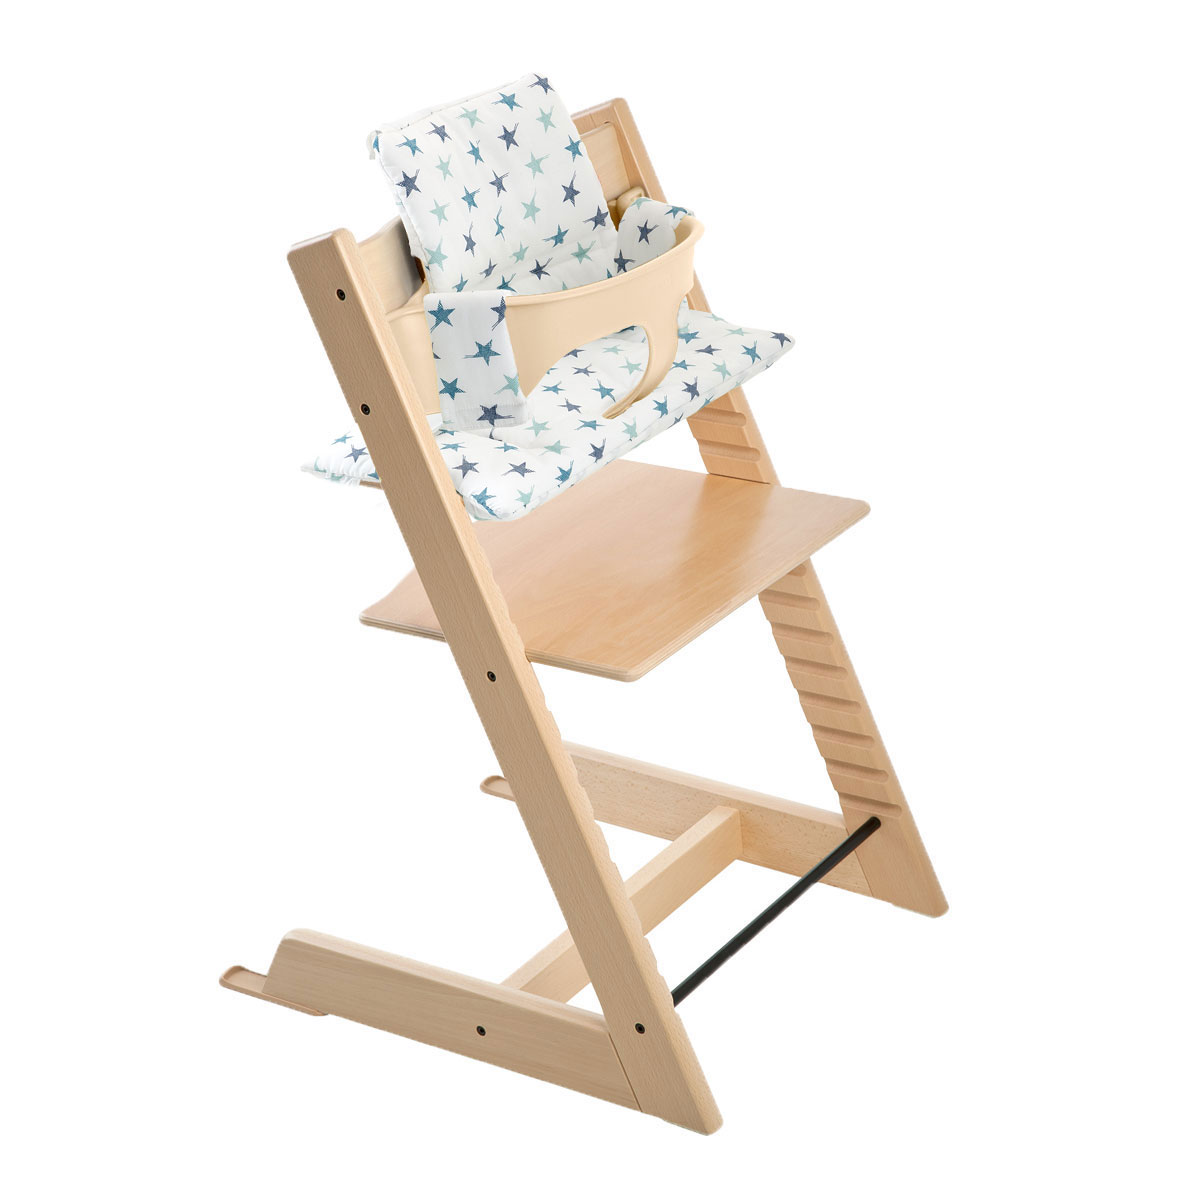 Stokke Trippe Trapp High Chair